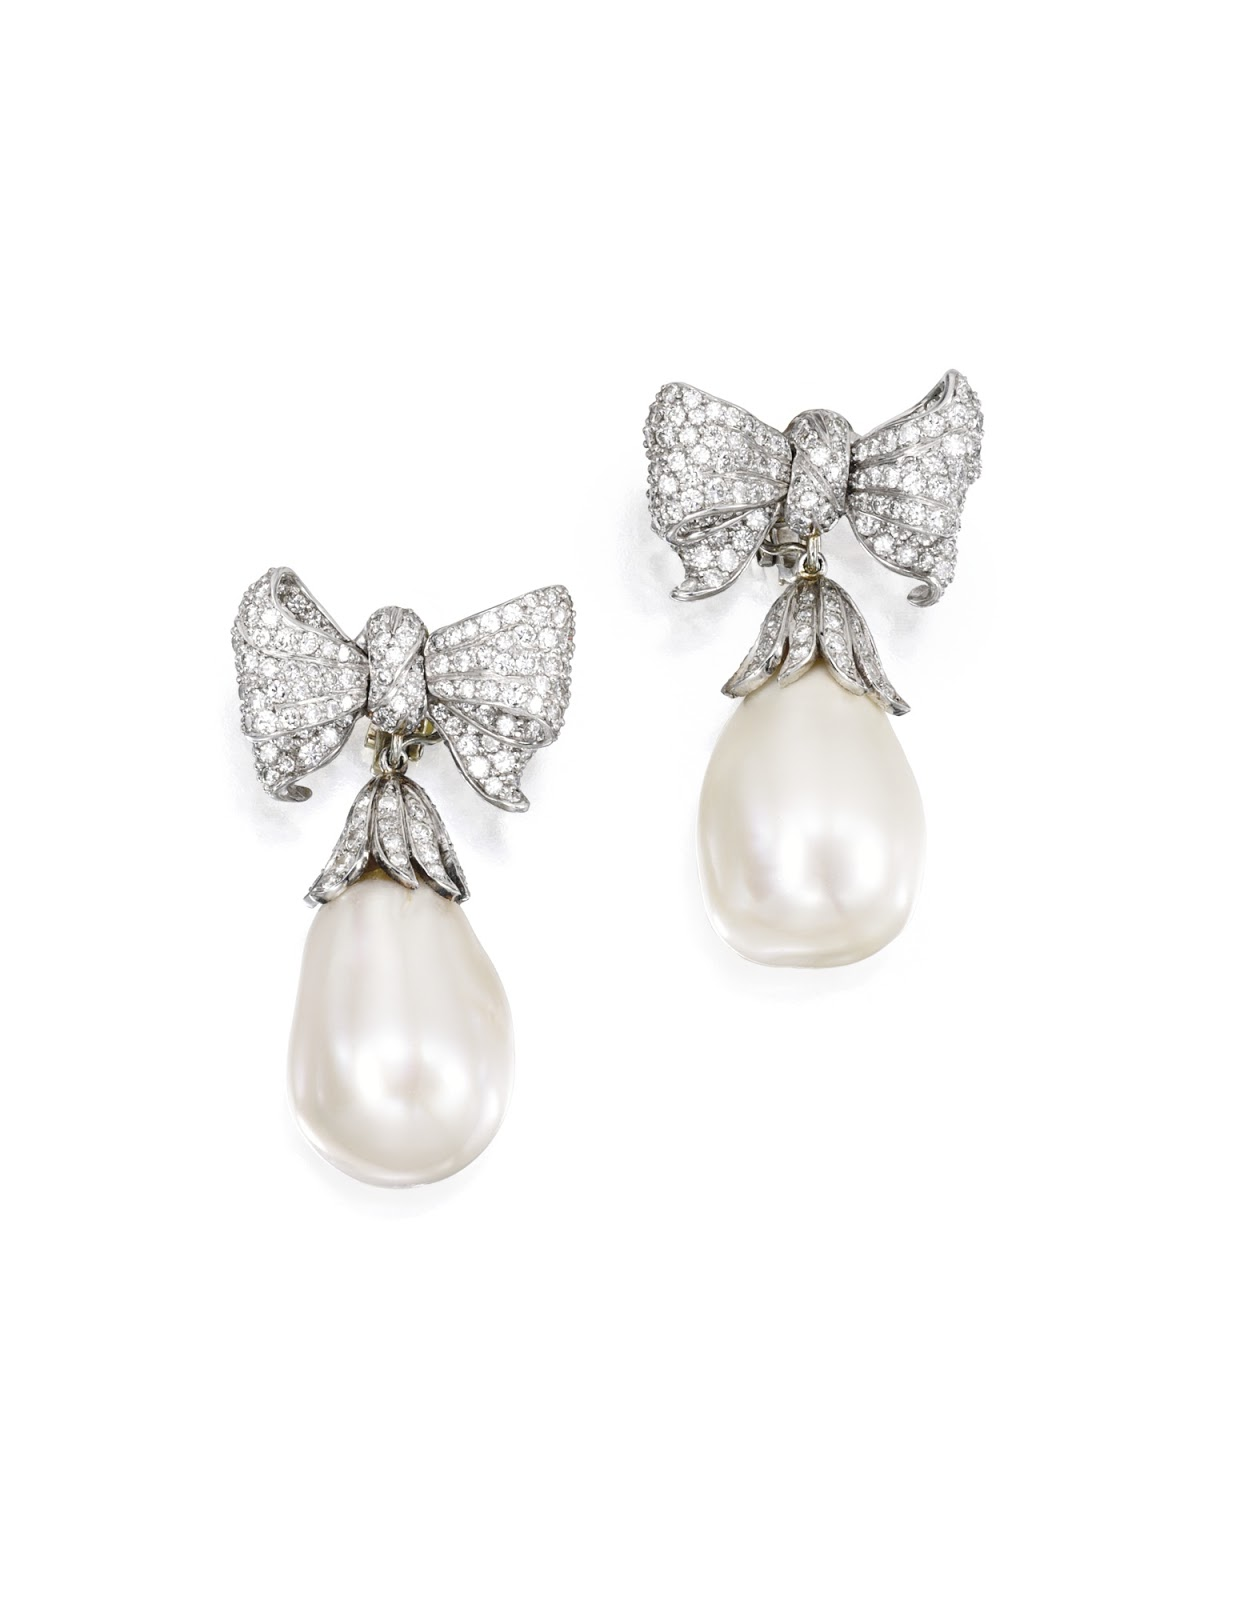 Platinum And Diamond Bow Earrings With Large Oriental Pearl Drops Made By  Verdura In 1988